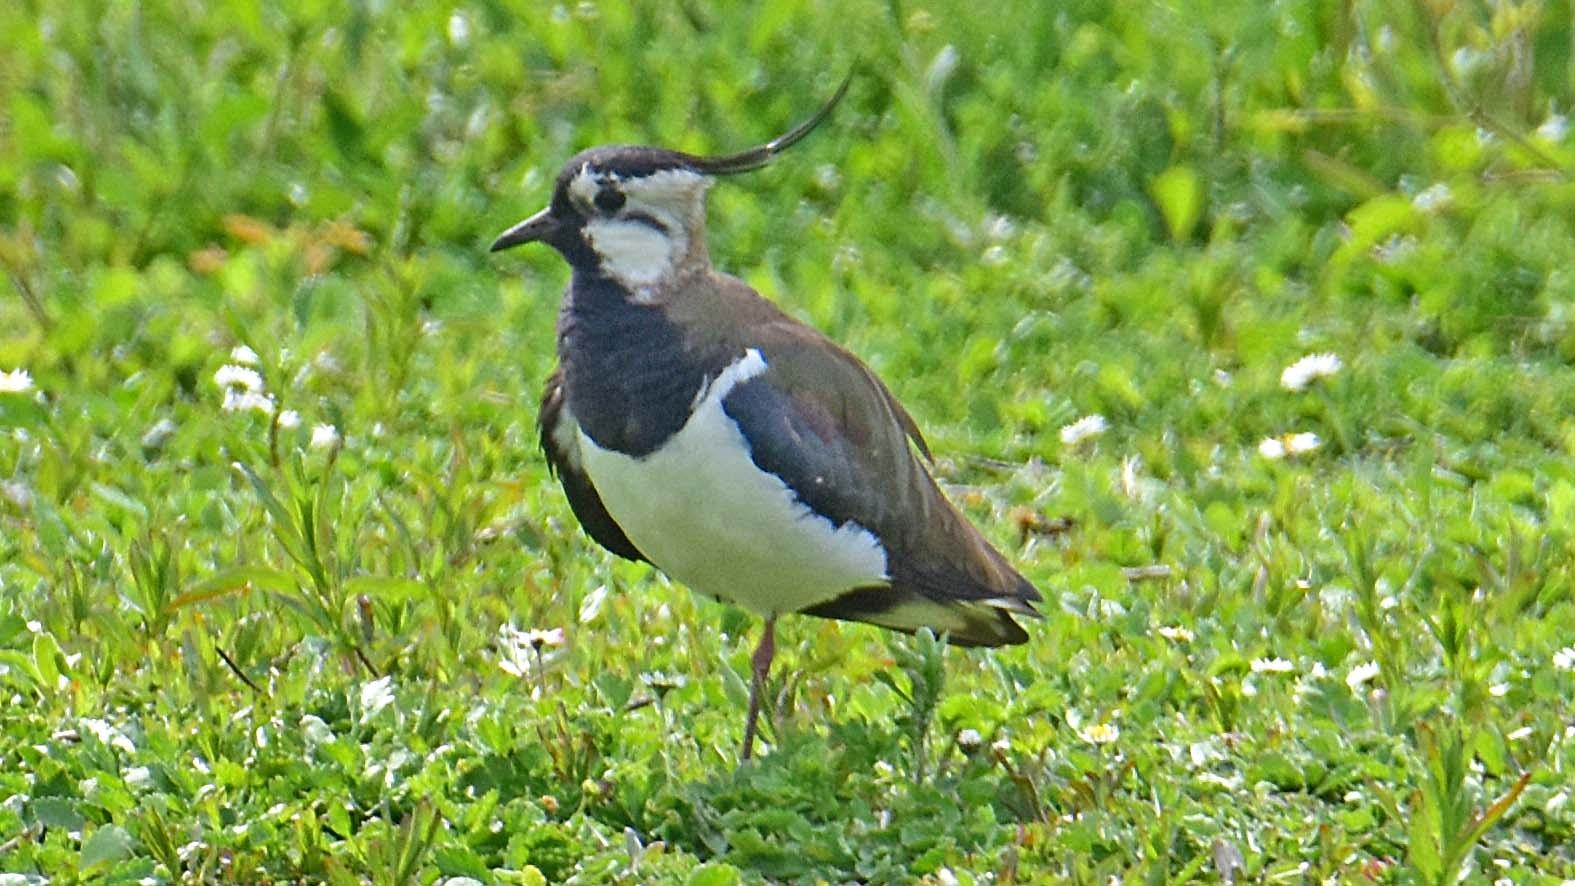 Lapwings are unmistakeable